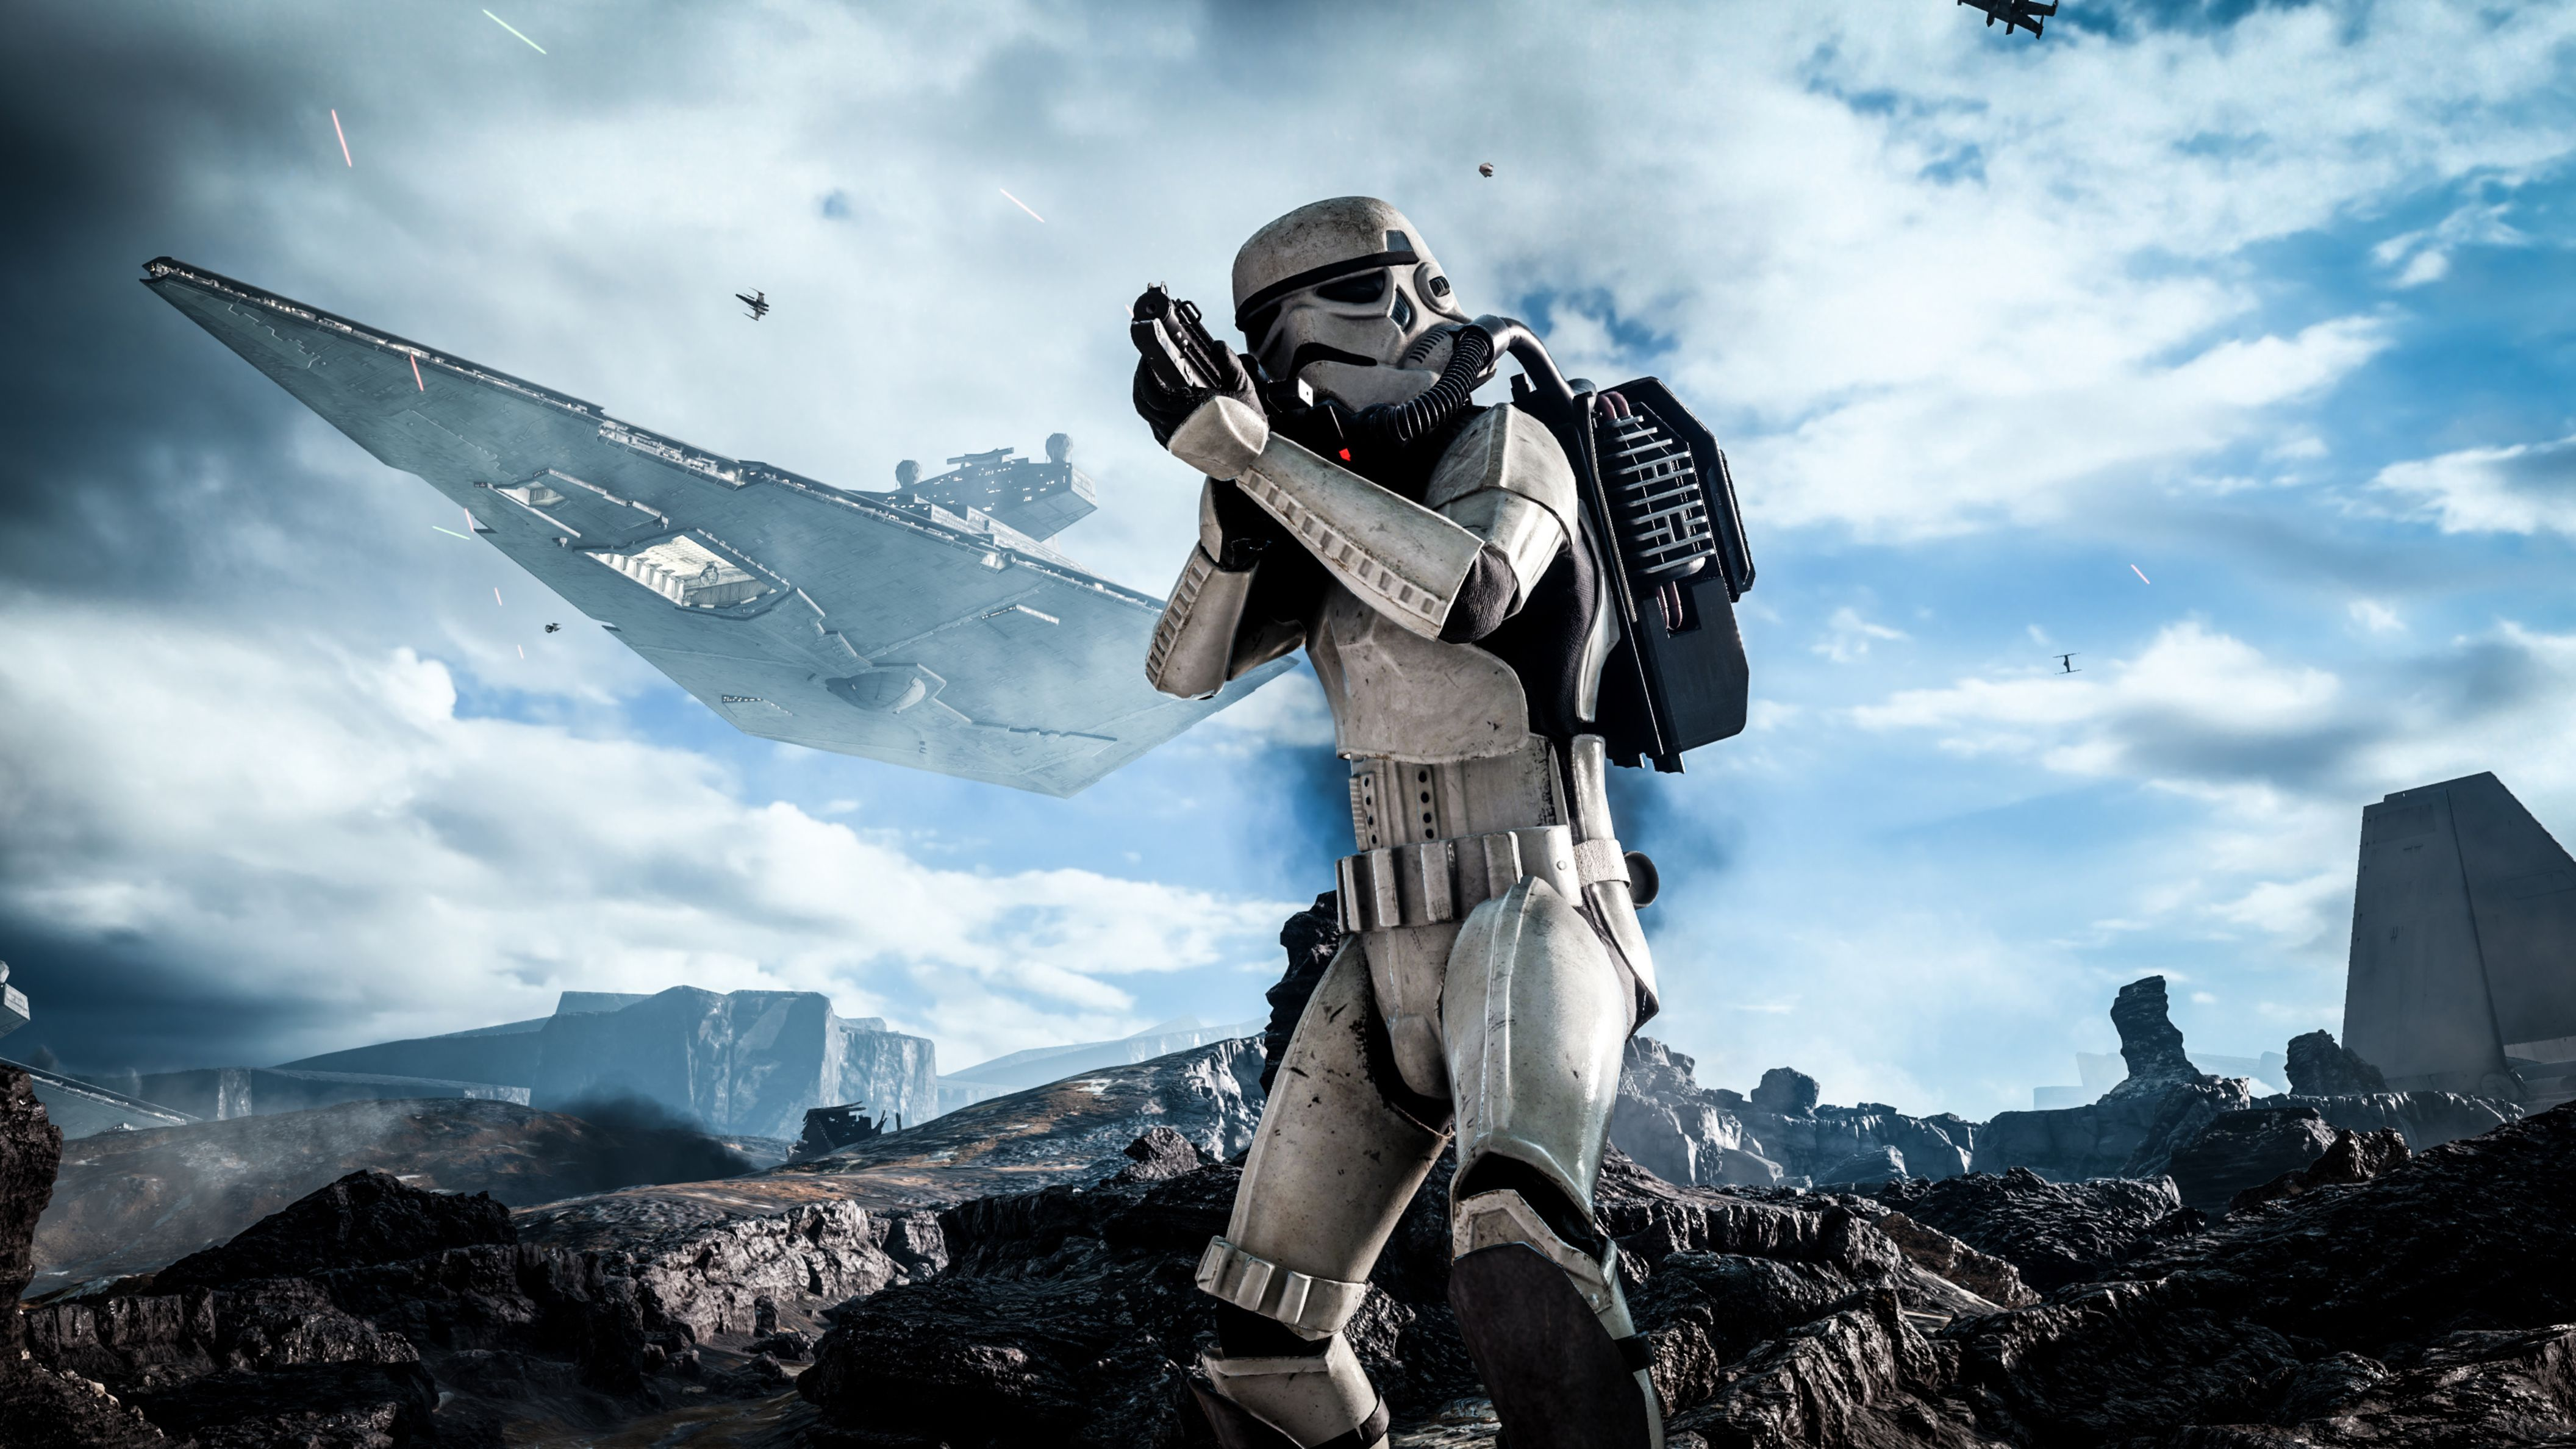 Download free HD Star Wars Battlefront Stormtrooper HD Wallpaper, image